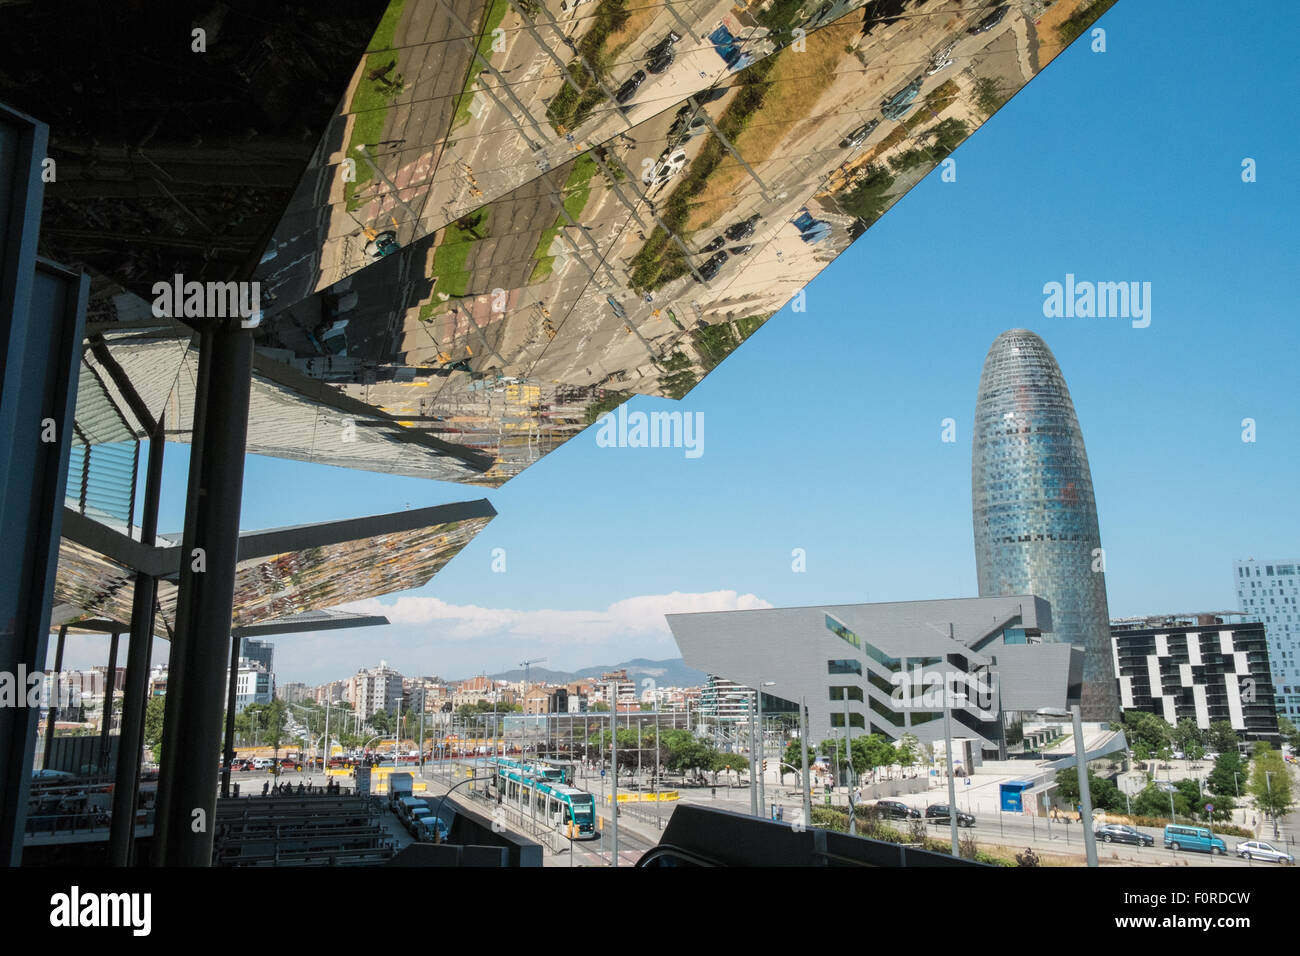 Design Els Barcelona   Agbar Design Tower Mirrored Museum Ceiling Els Stock Photos Agbar